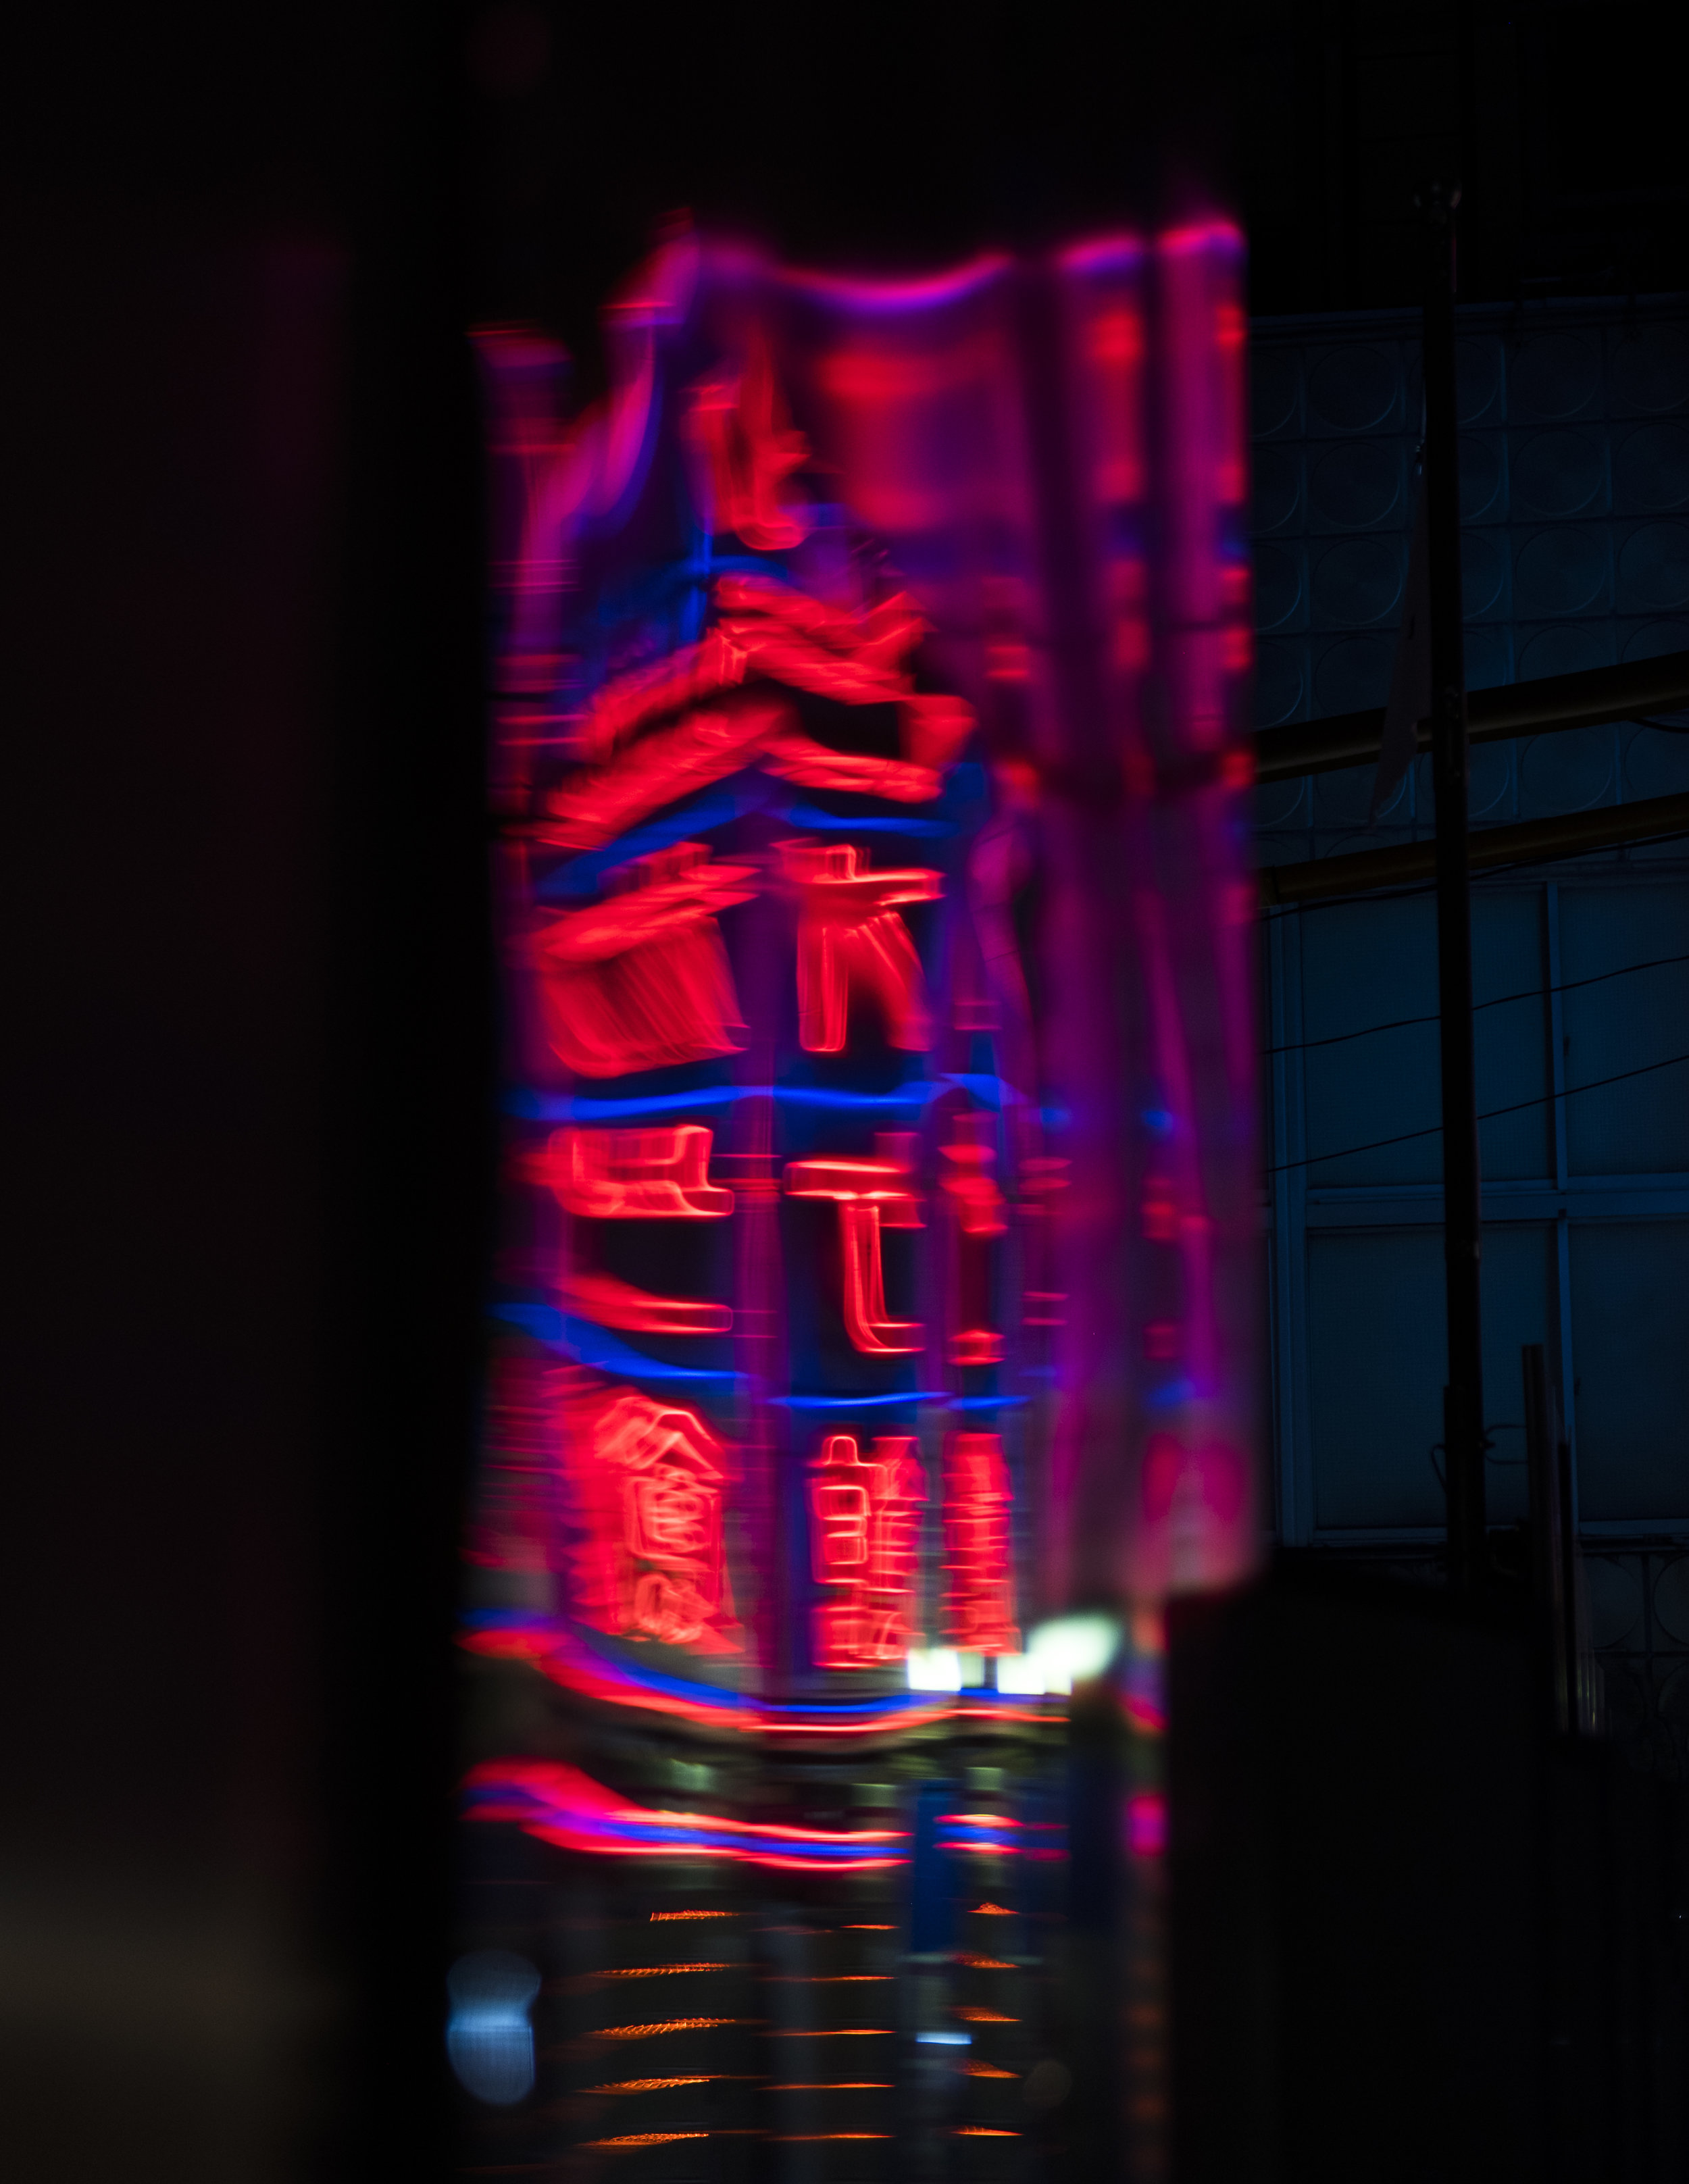 neon reflection 1.jpg